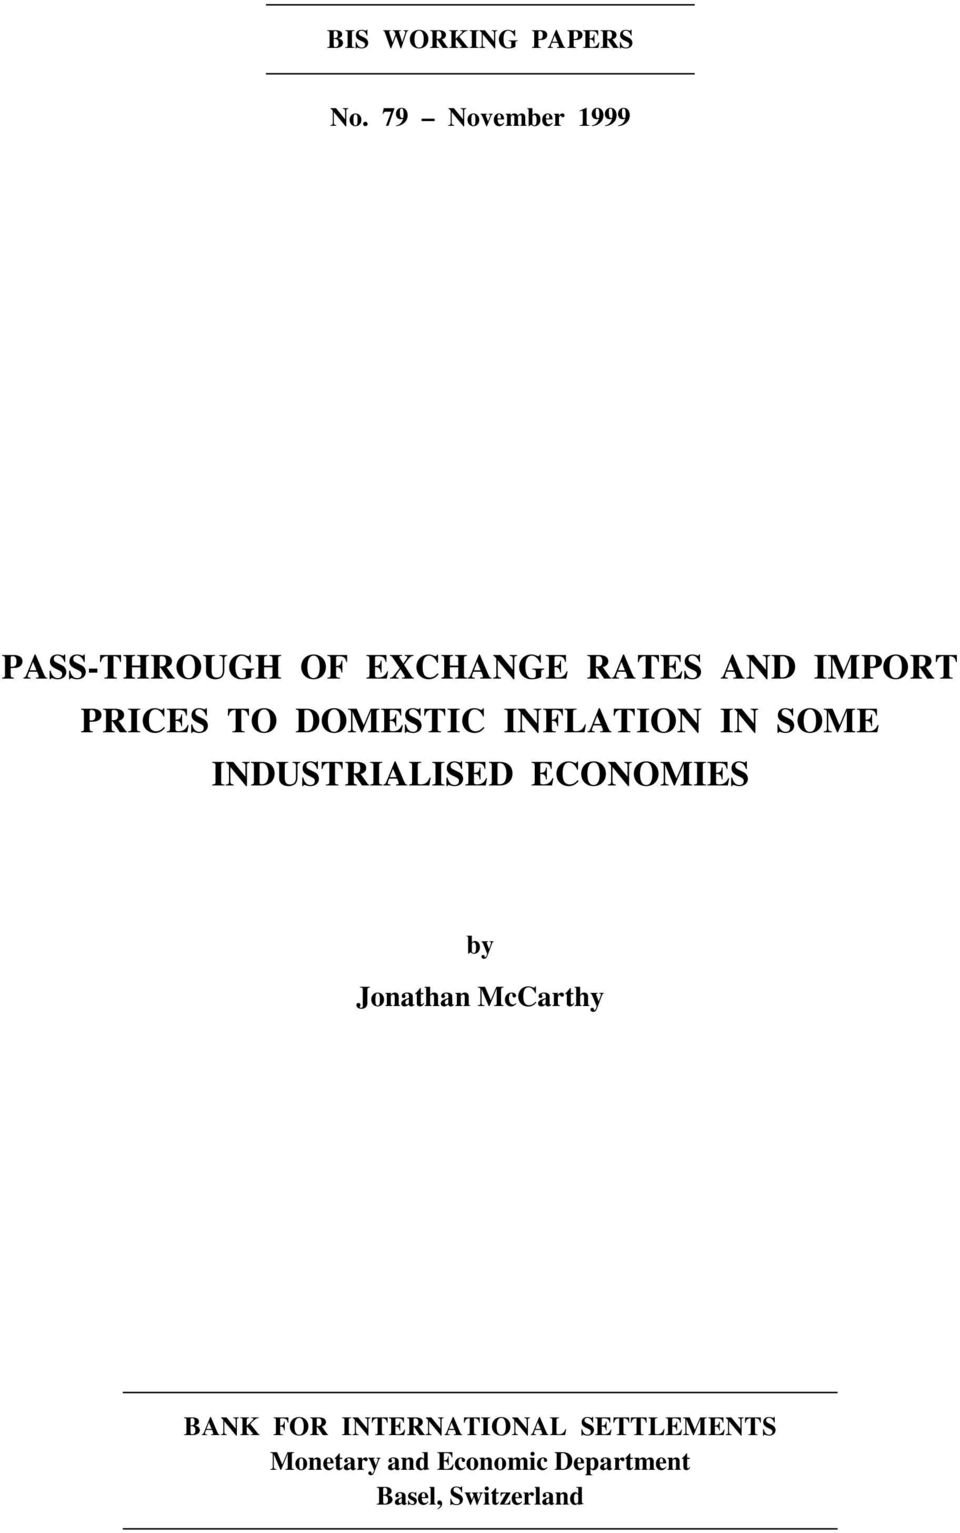 PRICES TO DOMESTIC INFLATION IN SOME INDUSTRIALISED ECONOMIES